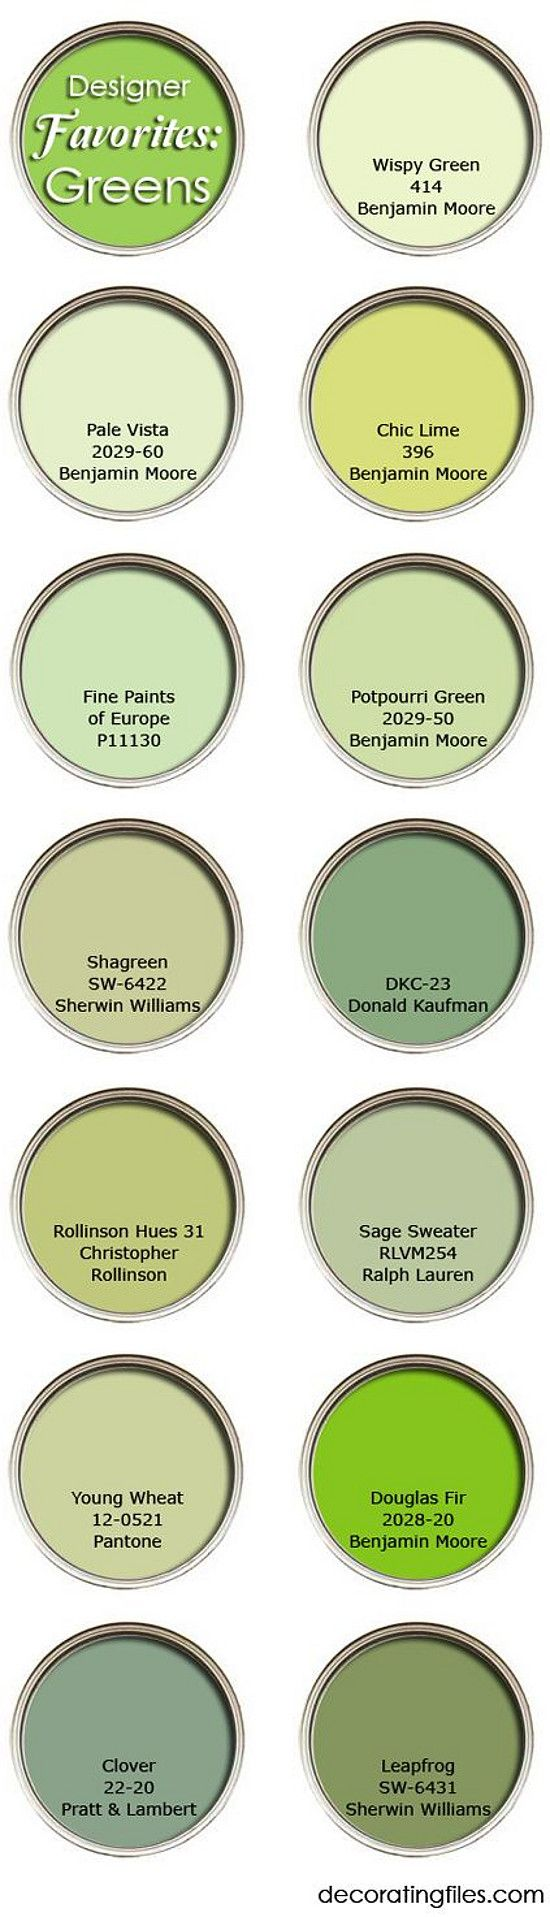 Lime green paint colors - Best Green Paint Colors For Interiors Exteriors Front Door Wispy Green 414 Benjamin